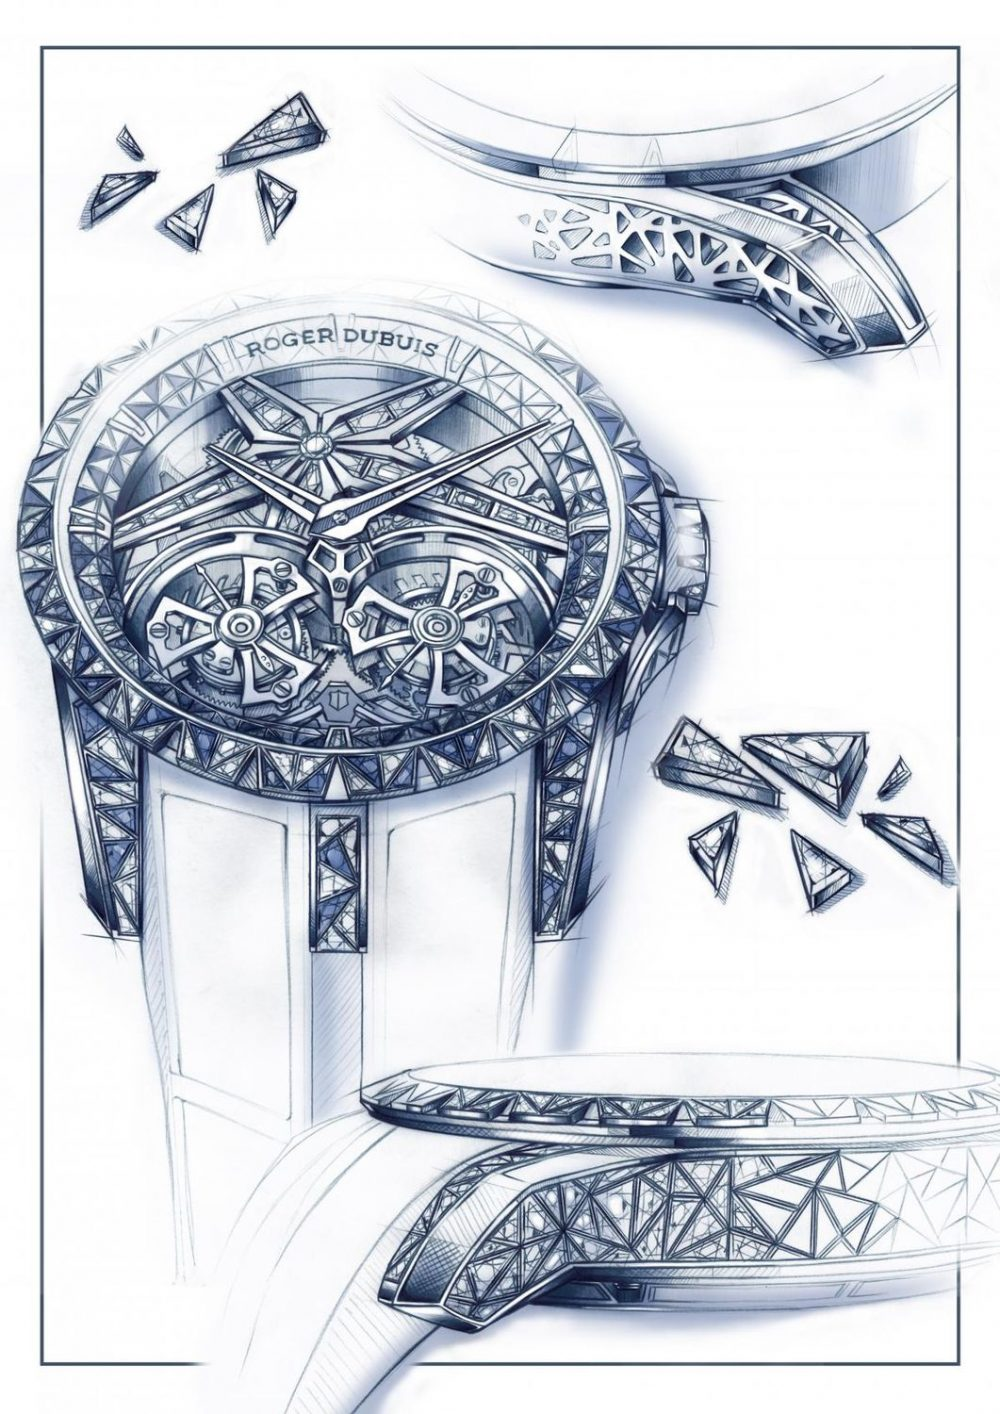 Roger Dubuis Excalibur Superbia features two flying tourbillon in a manufacture skeleton calibre